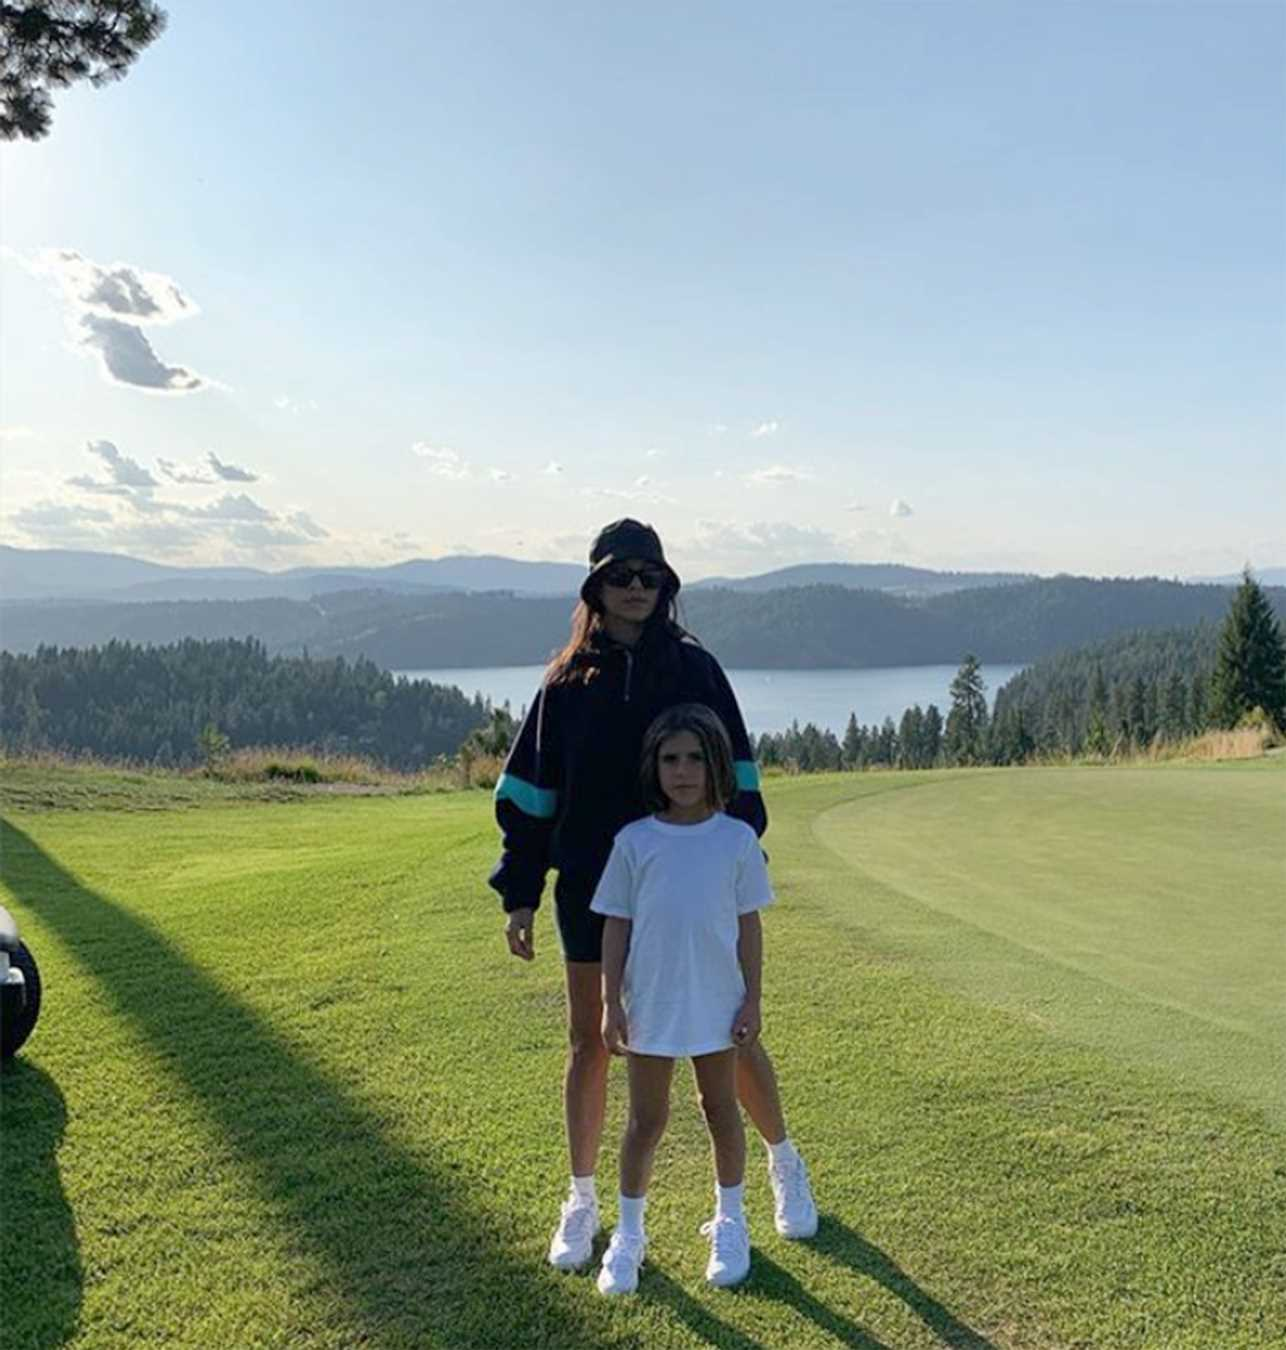 Kourtney Kardashian Claps Back at Troll Who Claims She's Not a Working Mom: 'I Most Definitely Am'